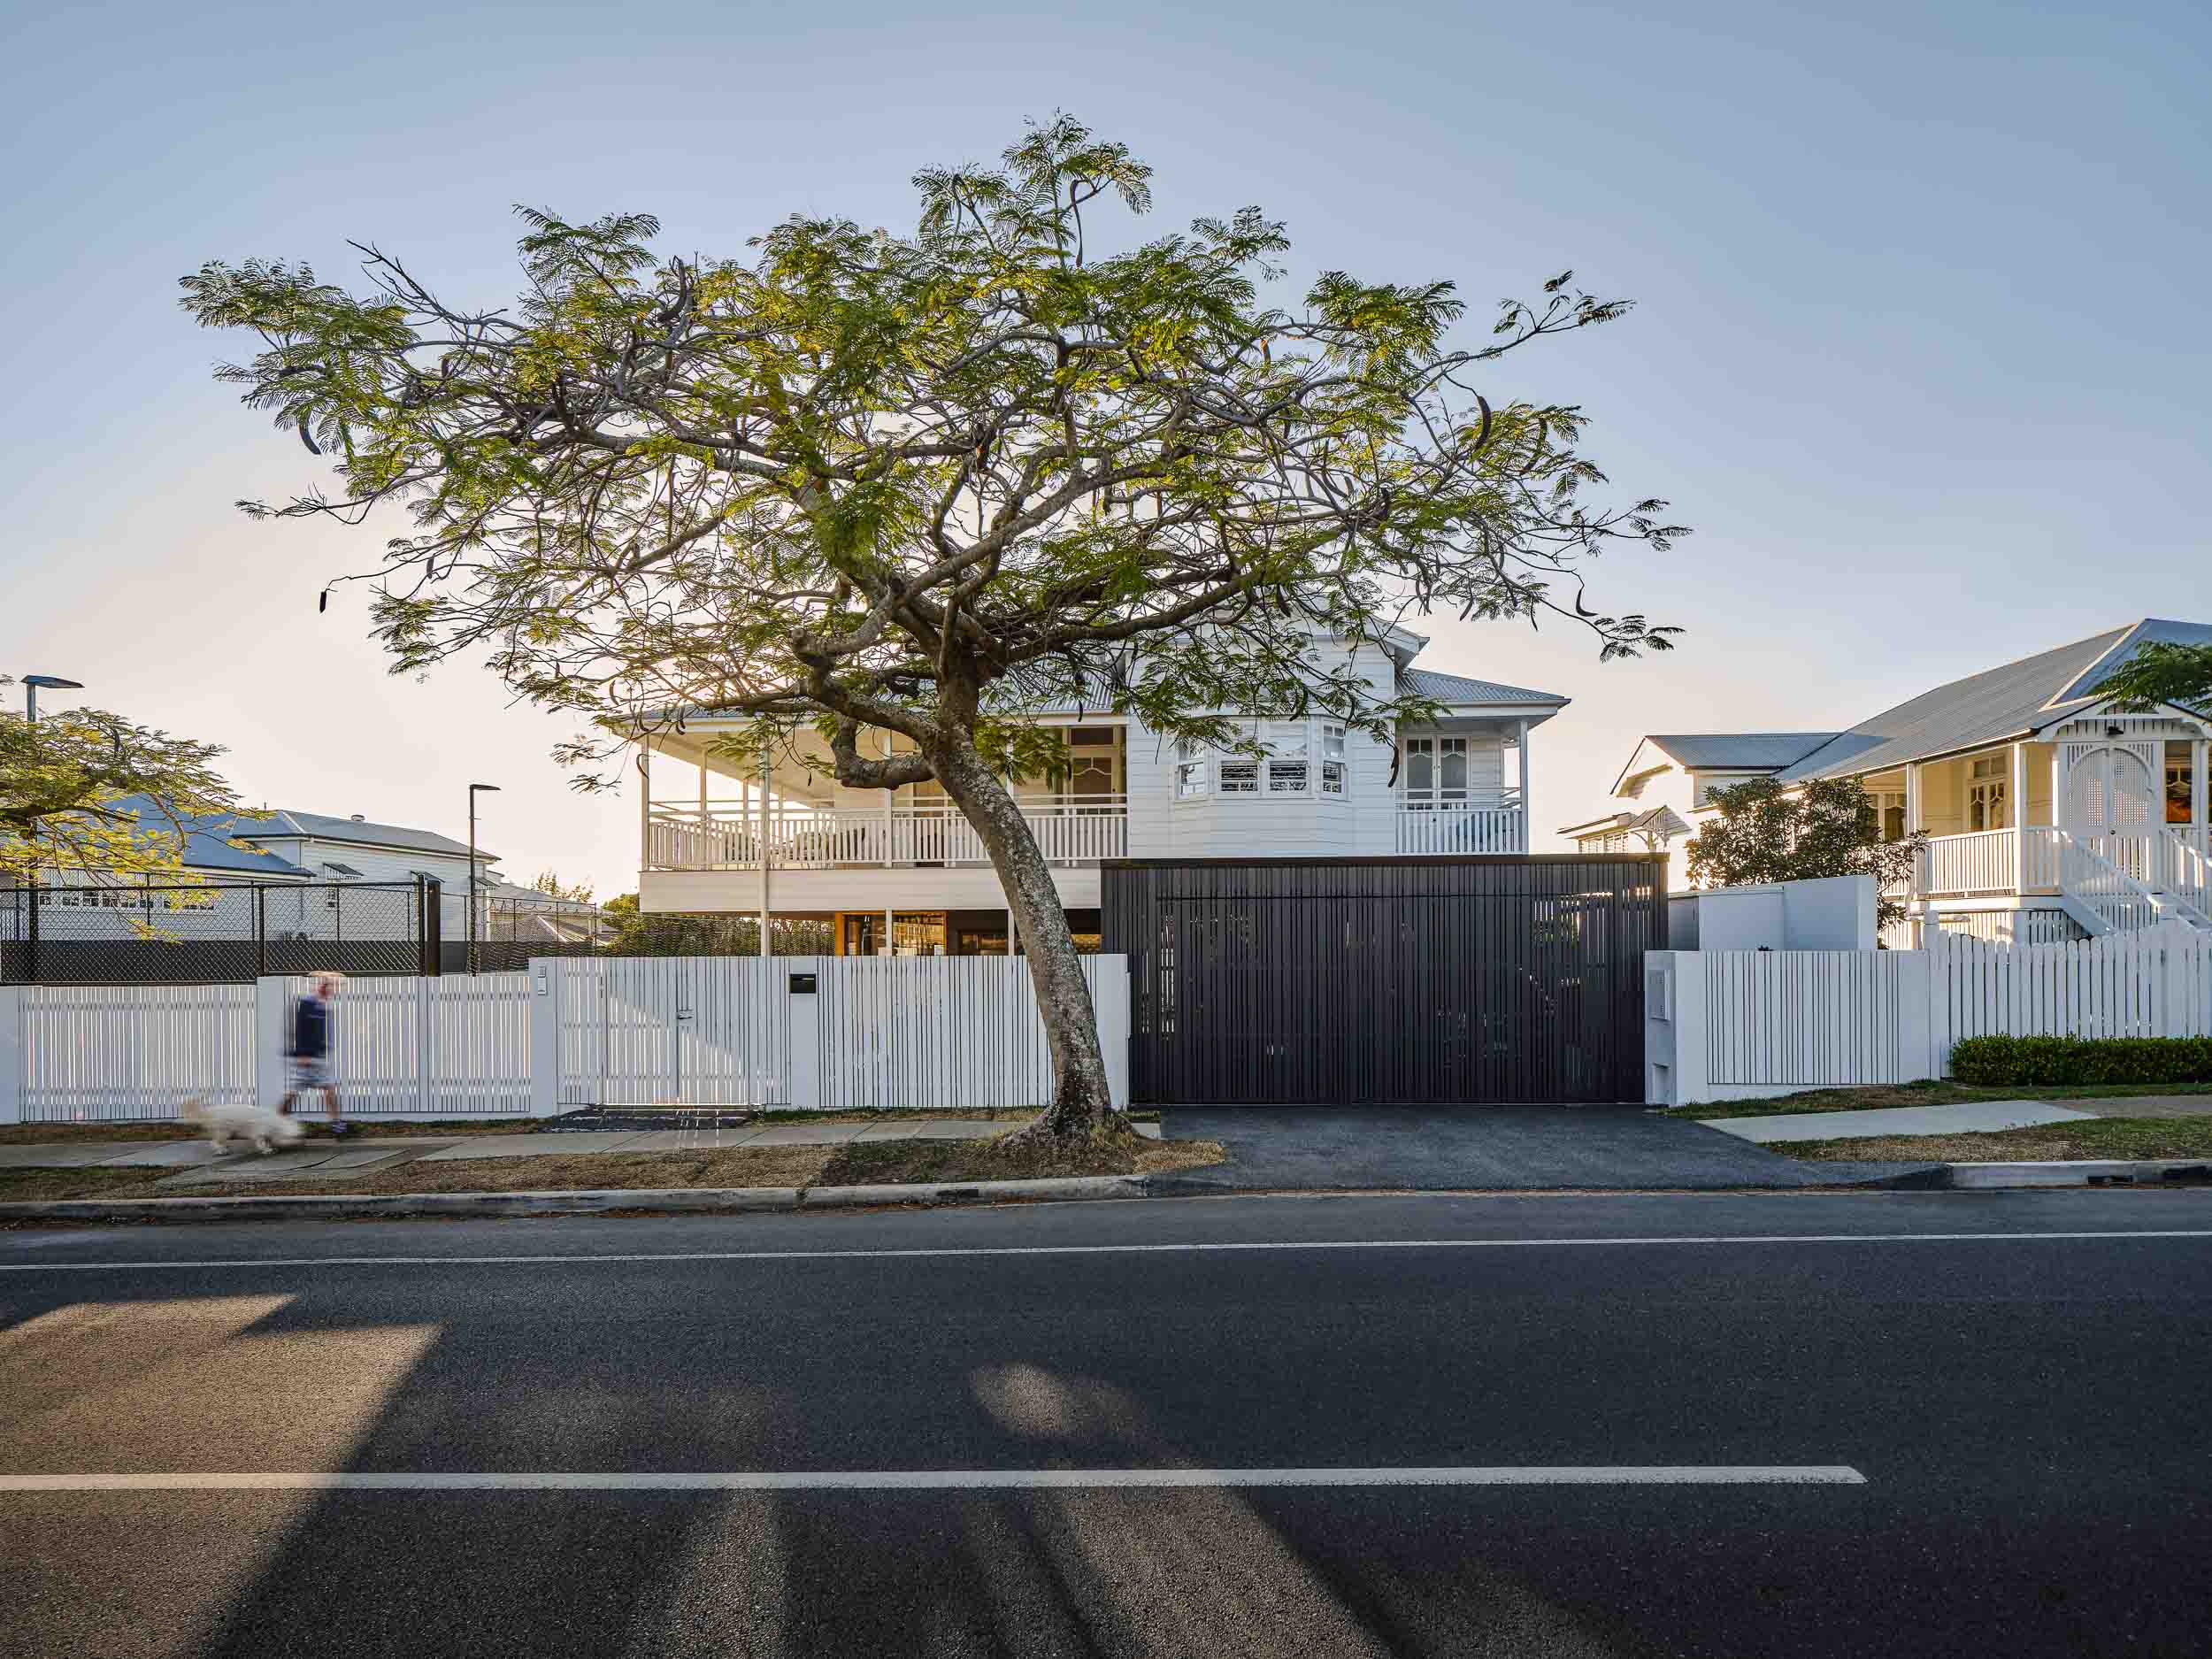 Street view of Ascot Residence - a sensitive renovation to a grand Queenslander in a prominent street